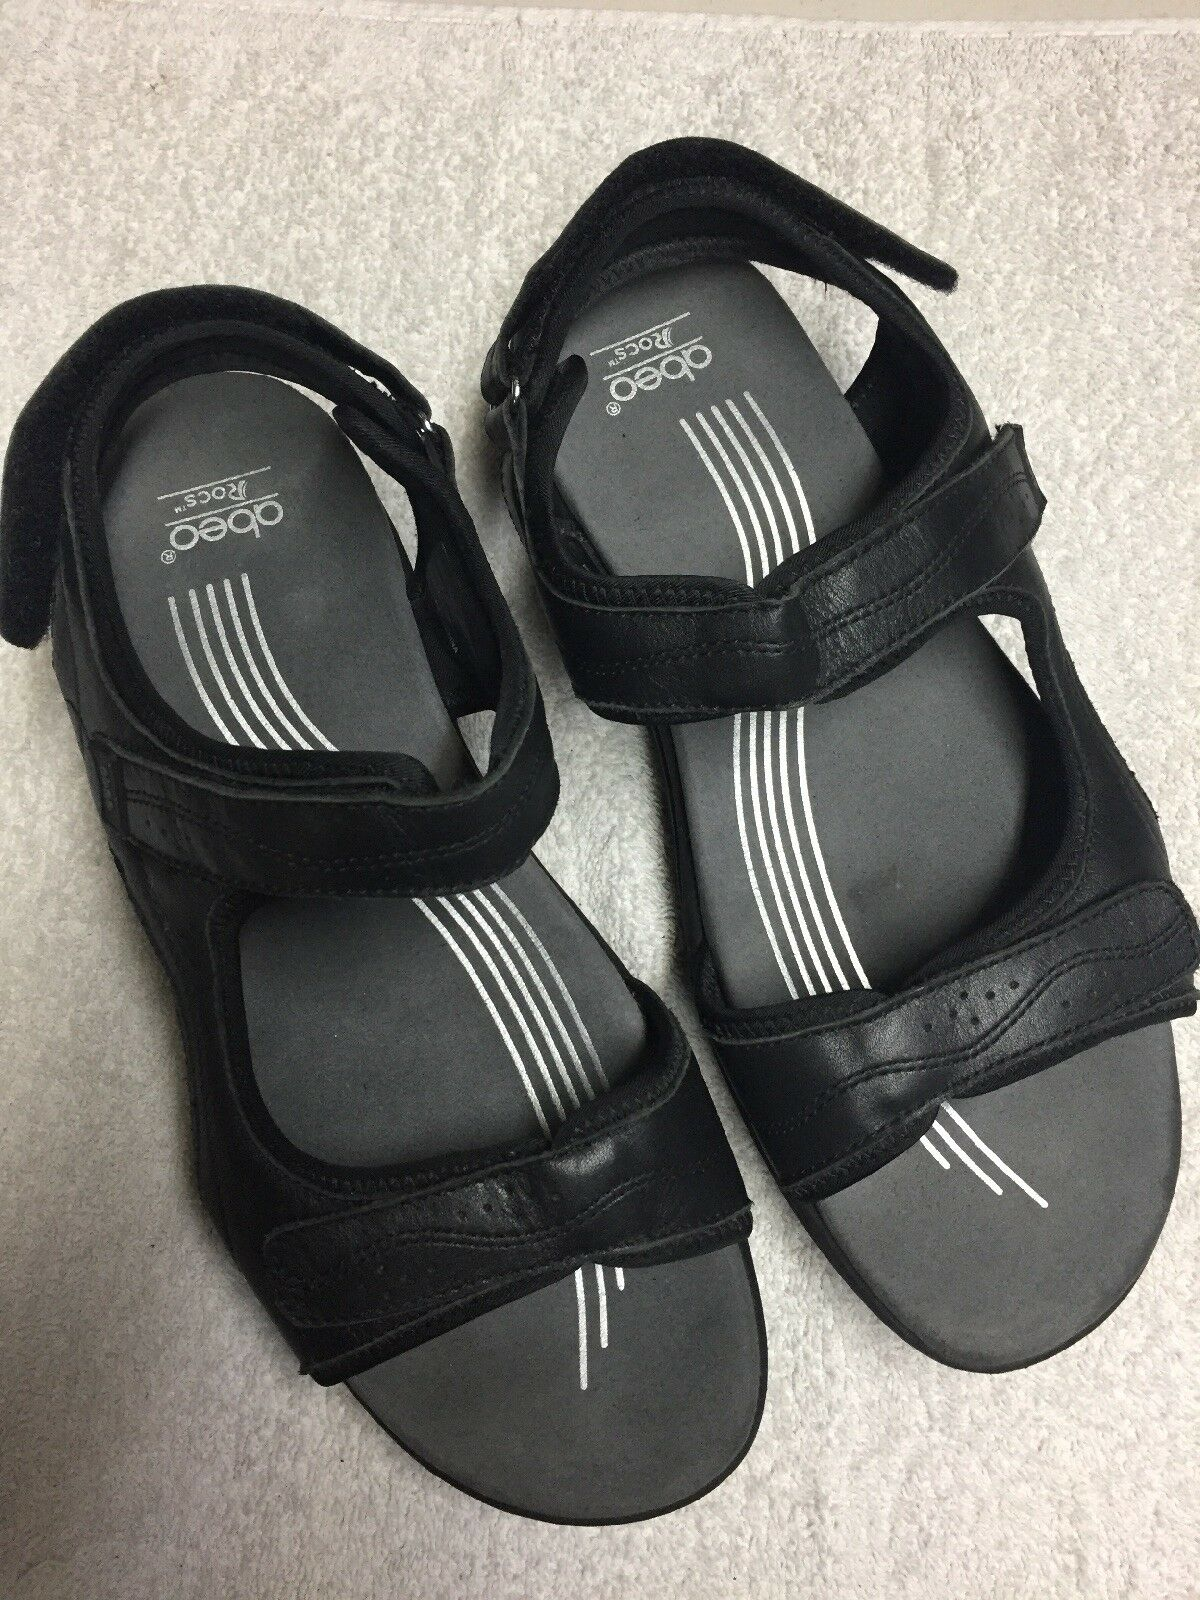 Obeo Rocs Women's Black Ankle Cross Strap Casual Sandals shoes Size Sz 11 Medium